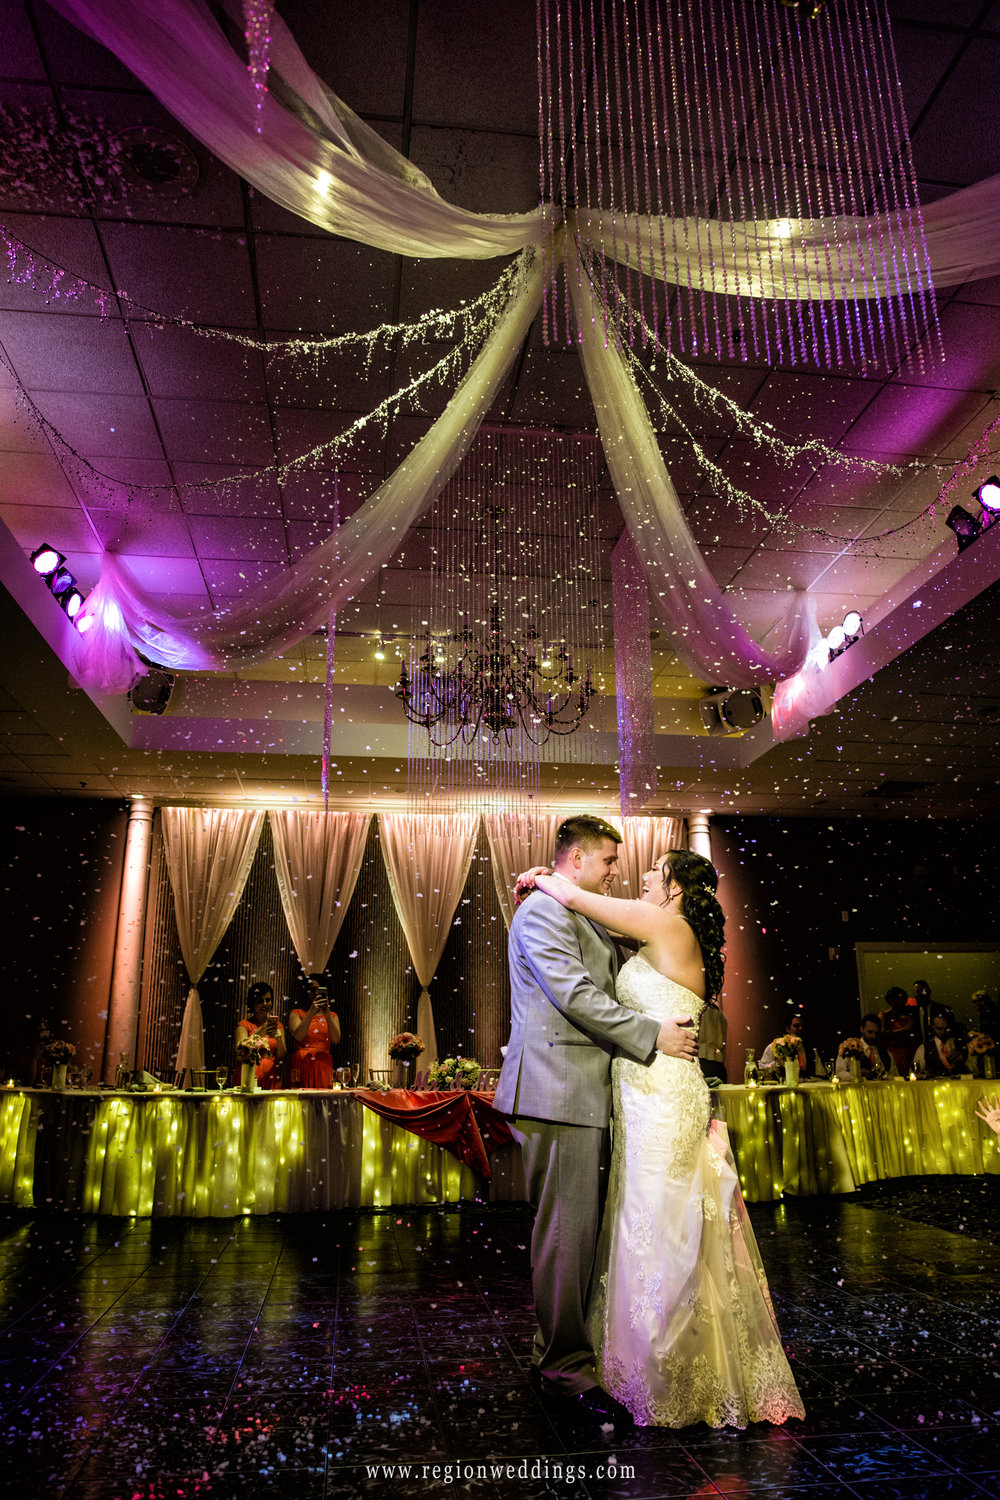 Light confetti falls upon the bride and groom during their first dance.